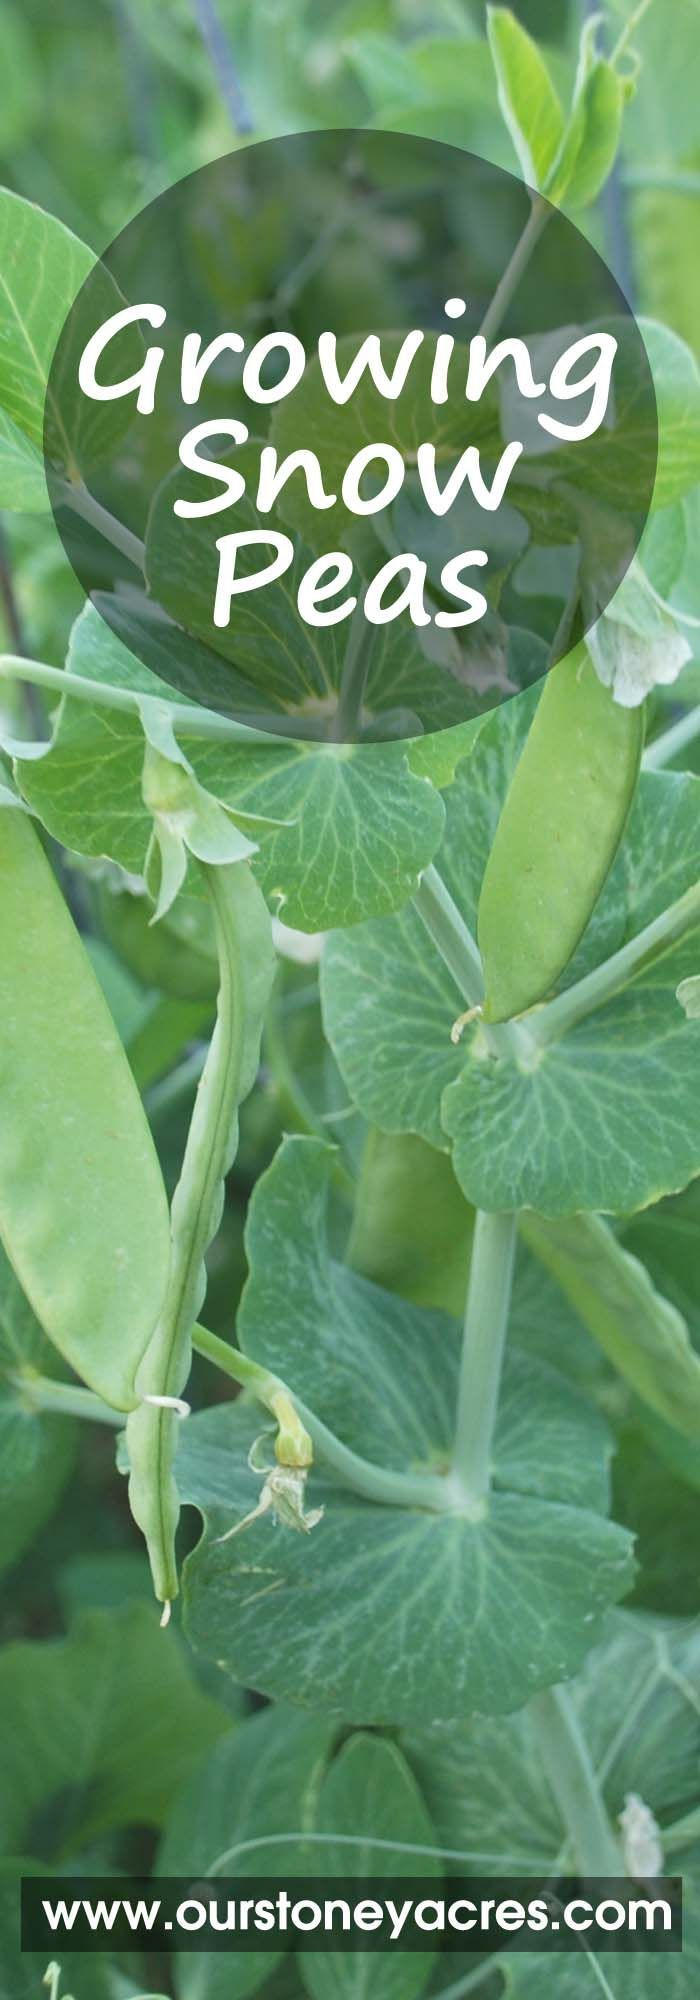 Growing snow peas is an easy process that starts early in the spring and can even be done in the fall. This growing guide will give you the basics needed to get a great crop of snow peas this year.